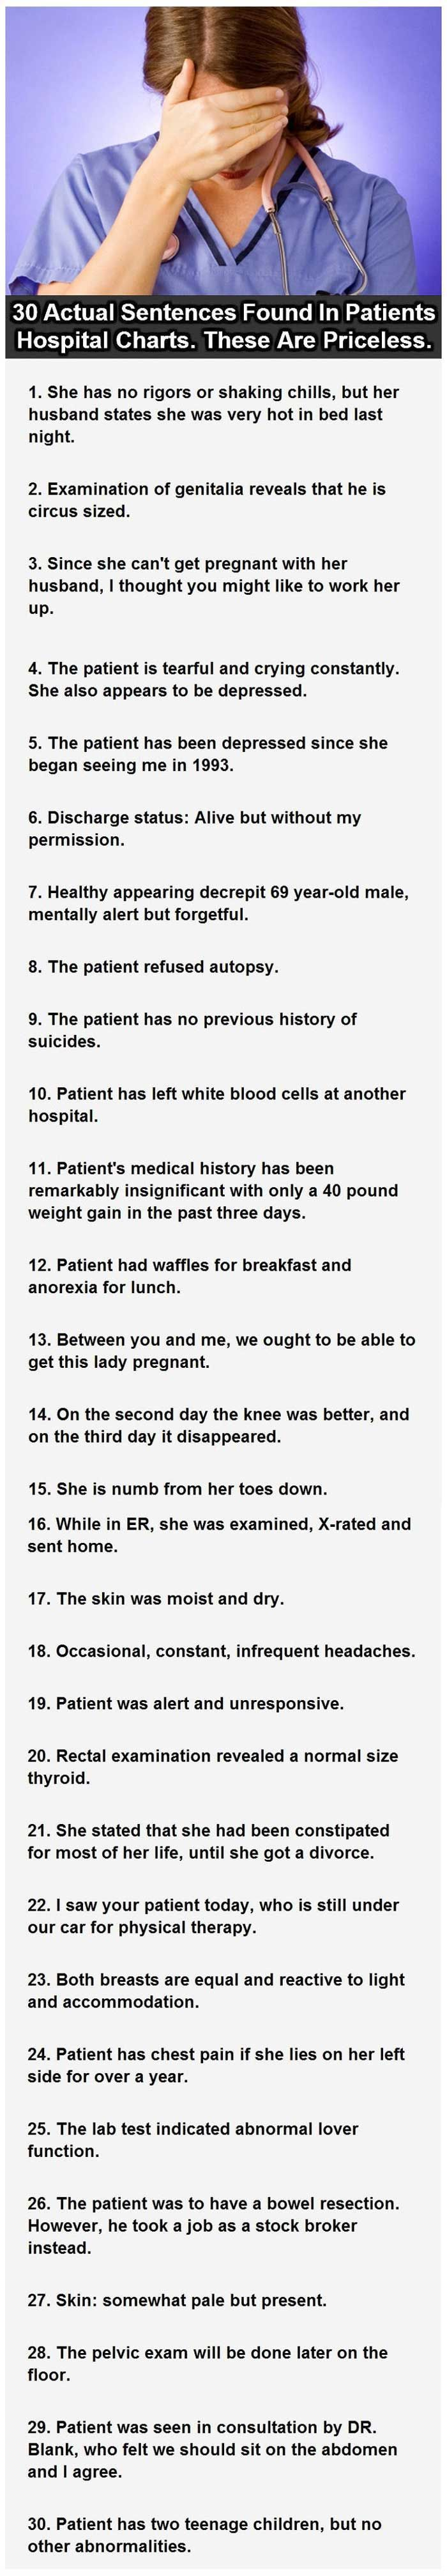 These 30 sentences were actually found in patient hospital charts